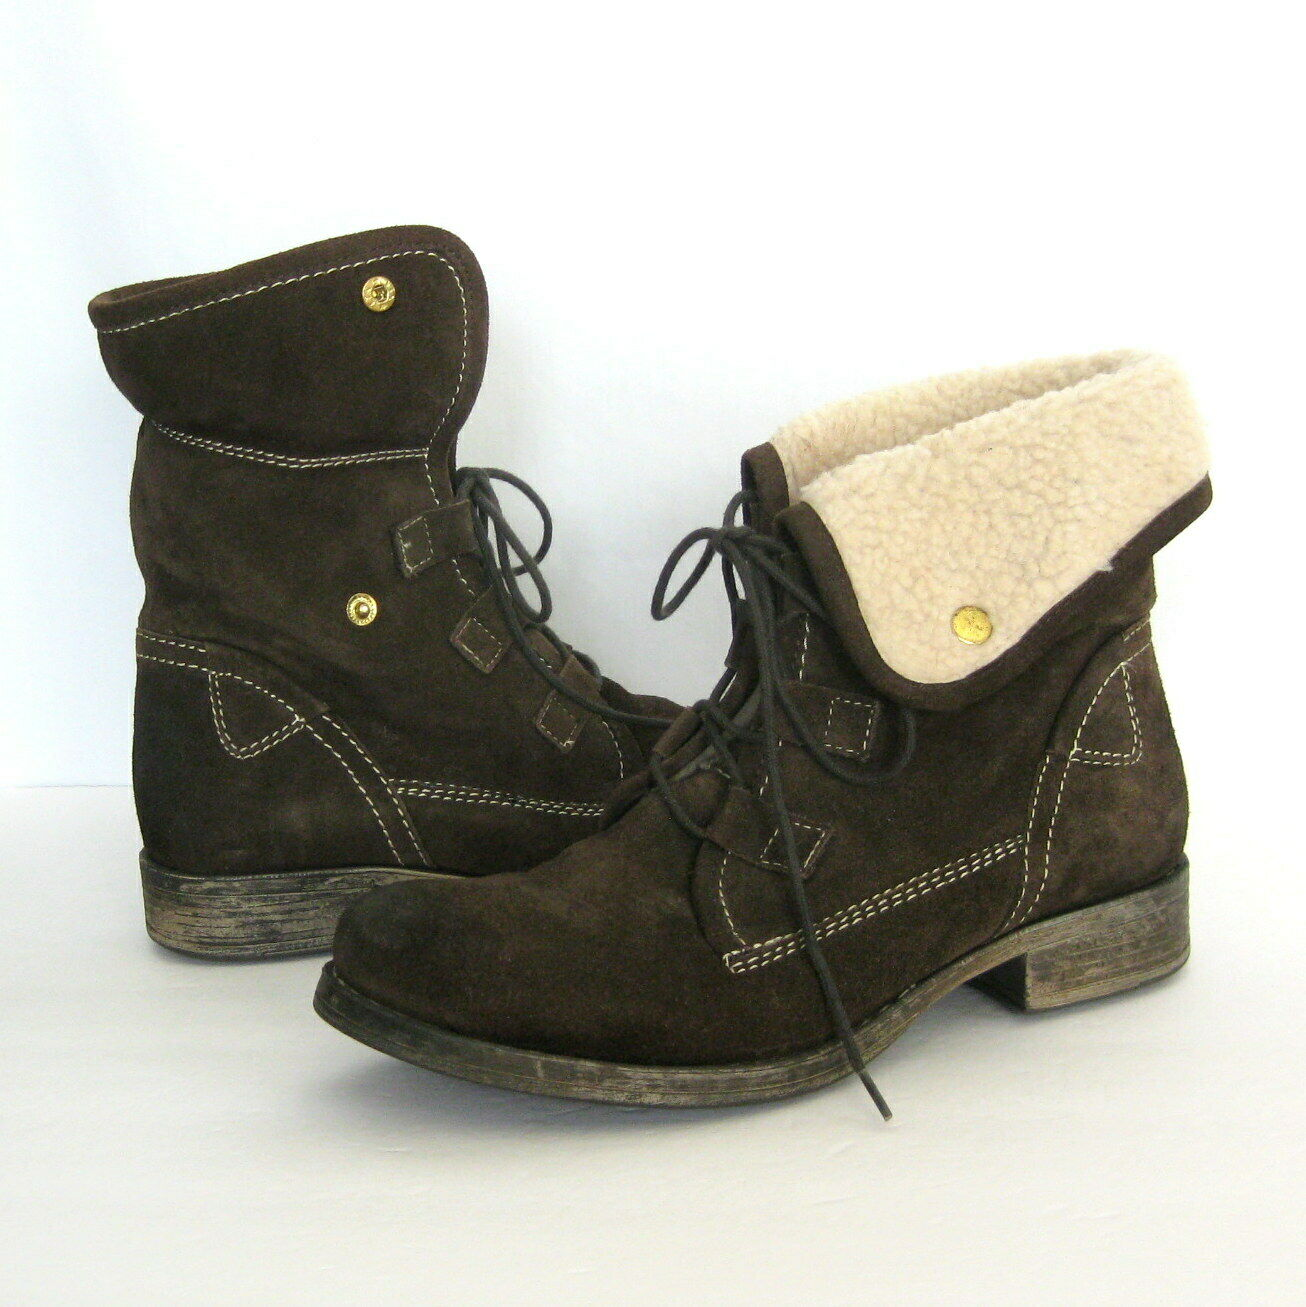 Diba True 10 Ankle Boots Jay Neen Brown Distressed Suede Fold Over Shearling 10